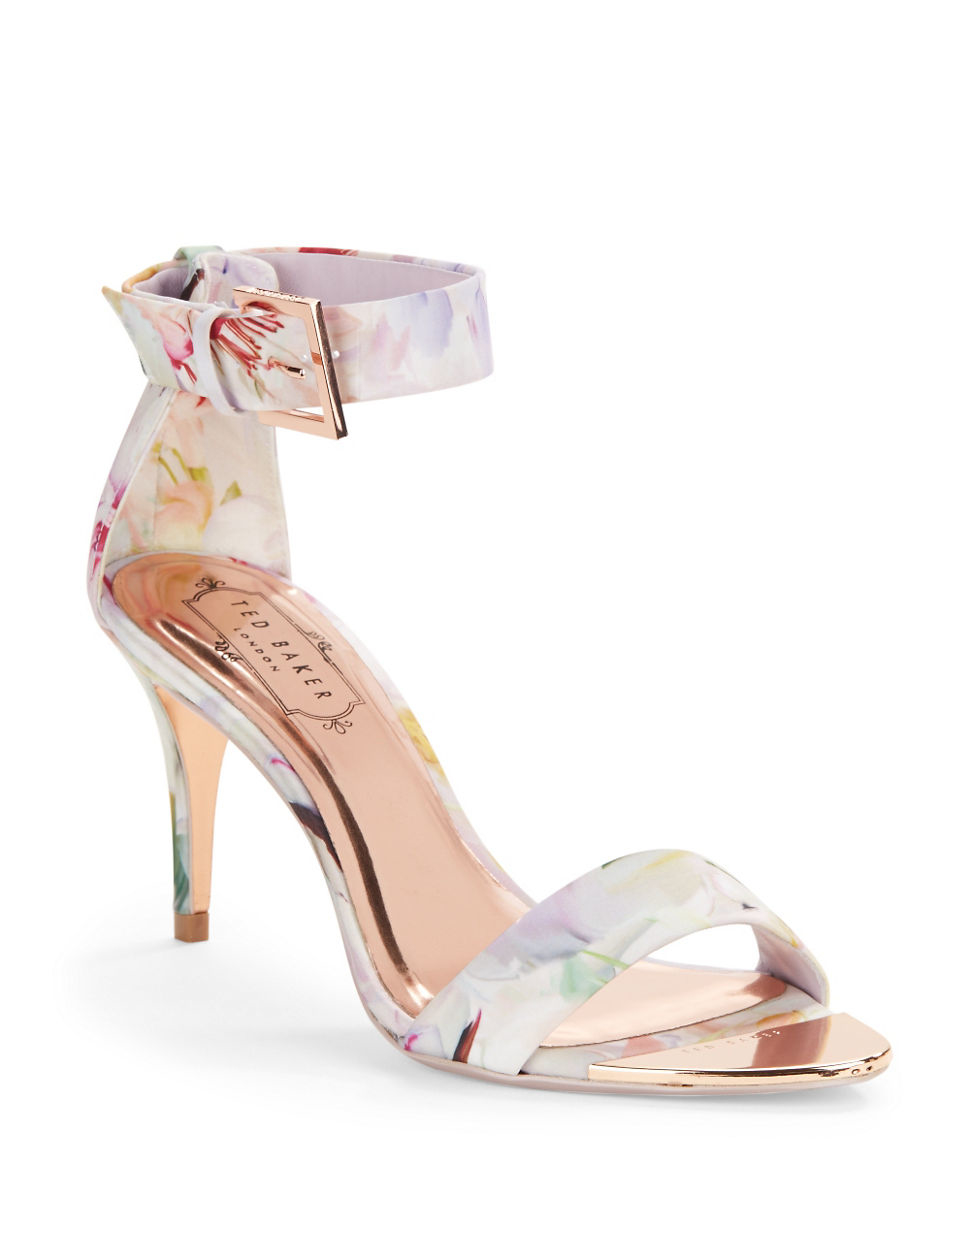 9474548bd12e Ted Baker Blynne Floral Open-toe Sandals in White - Lyst